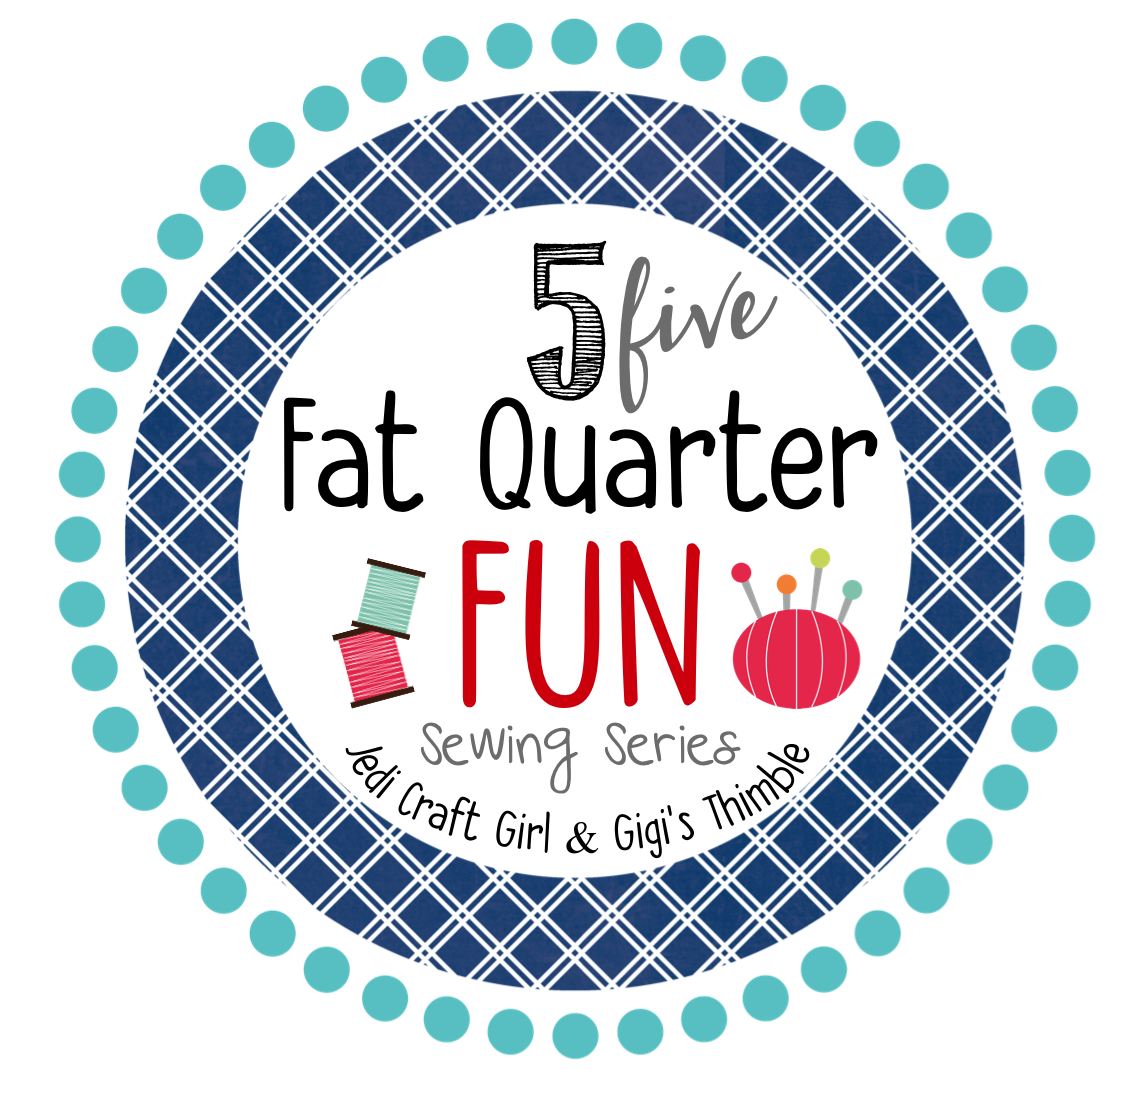 Five Fat Quarter Fun